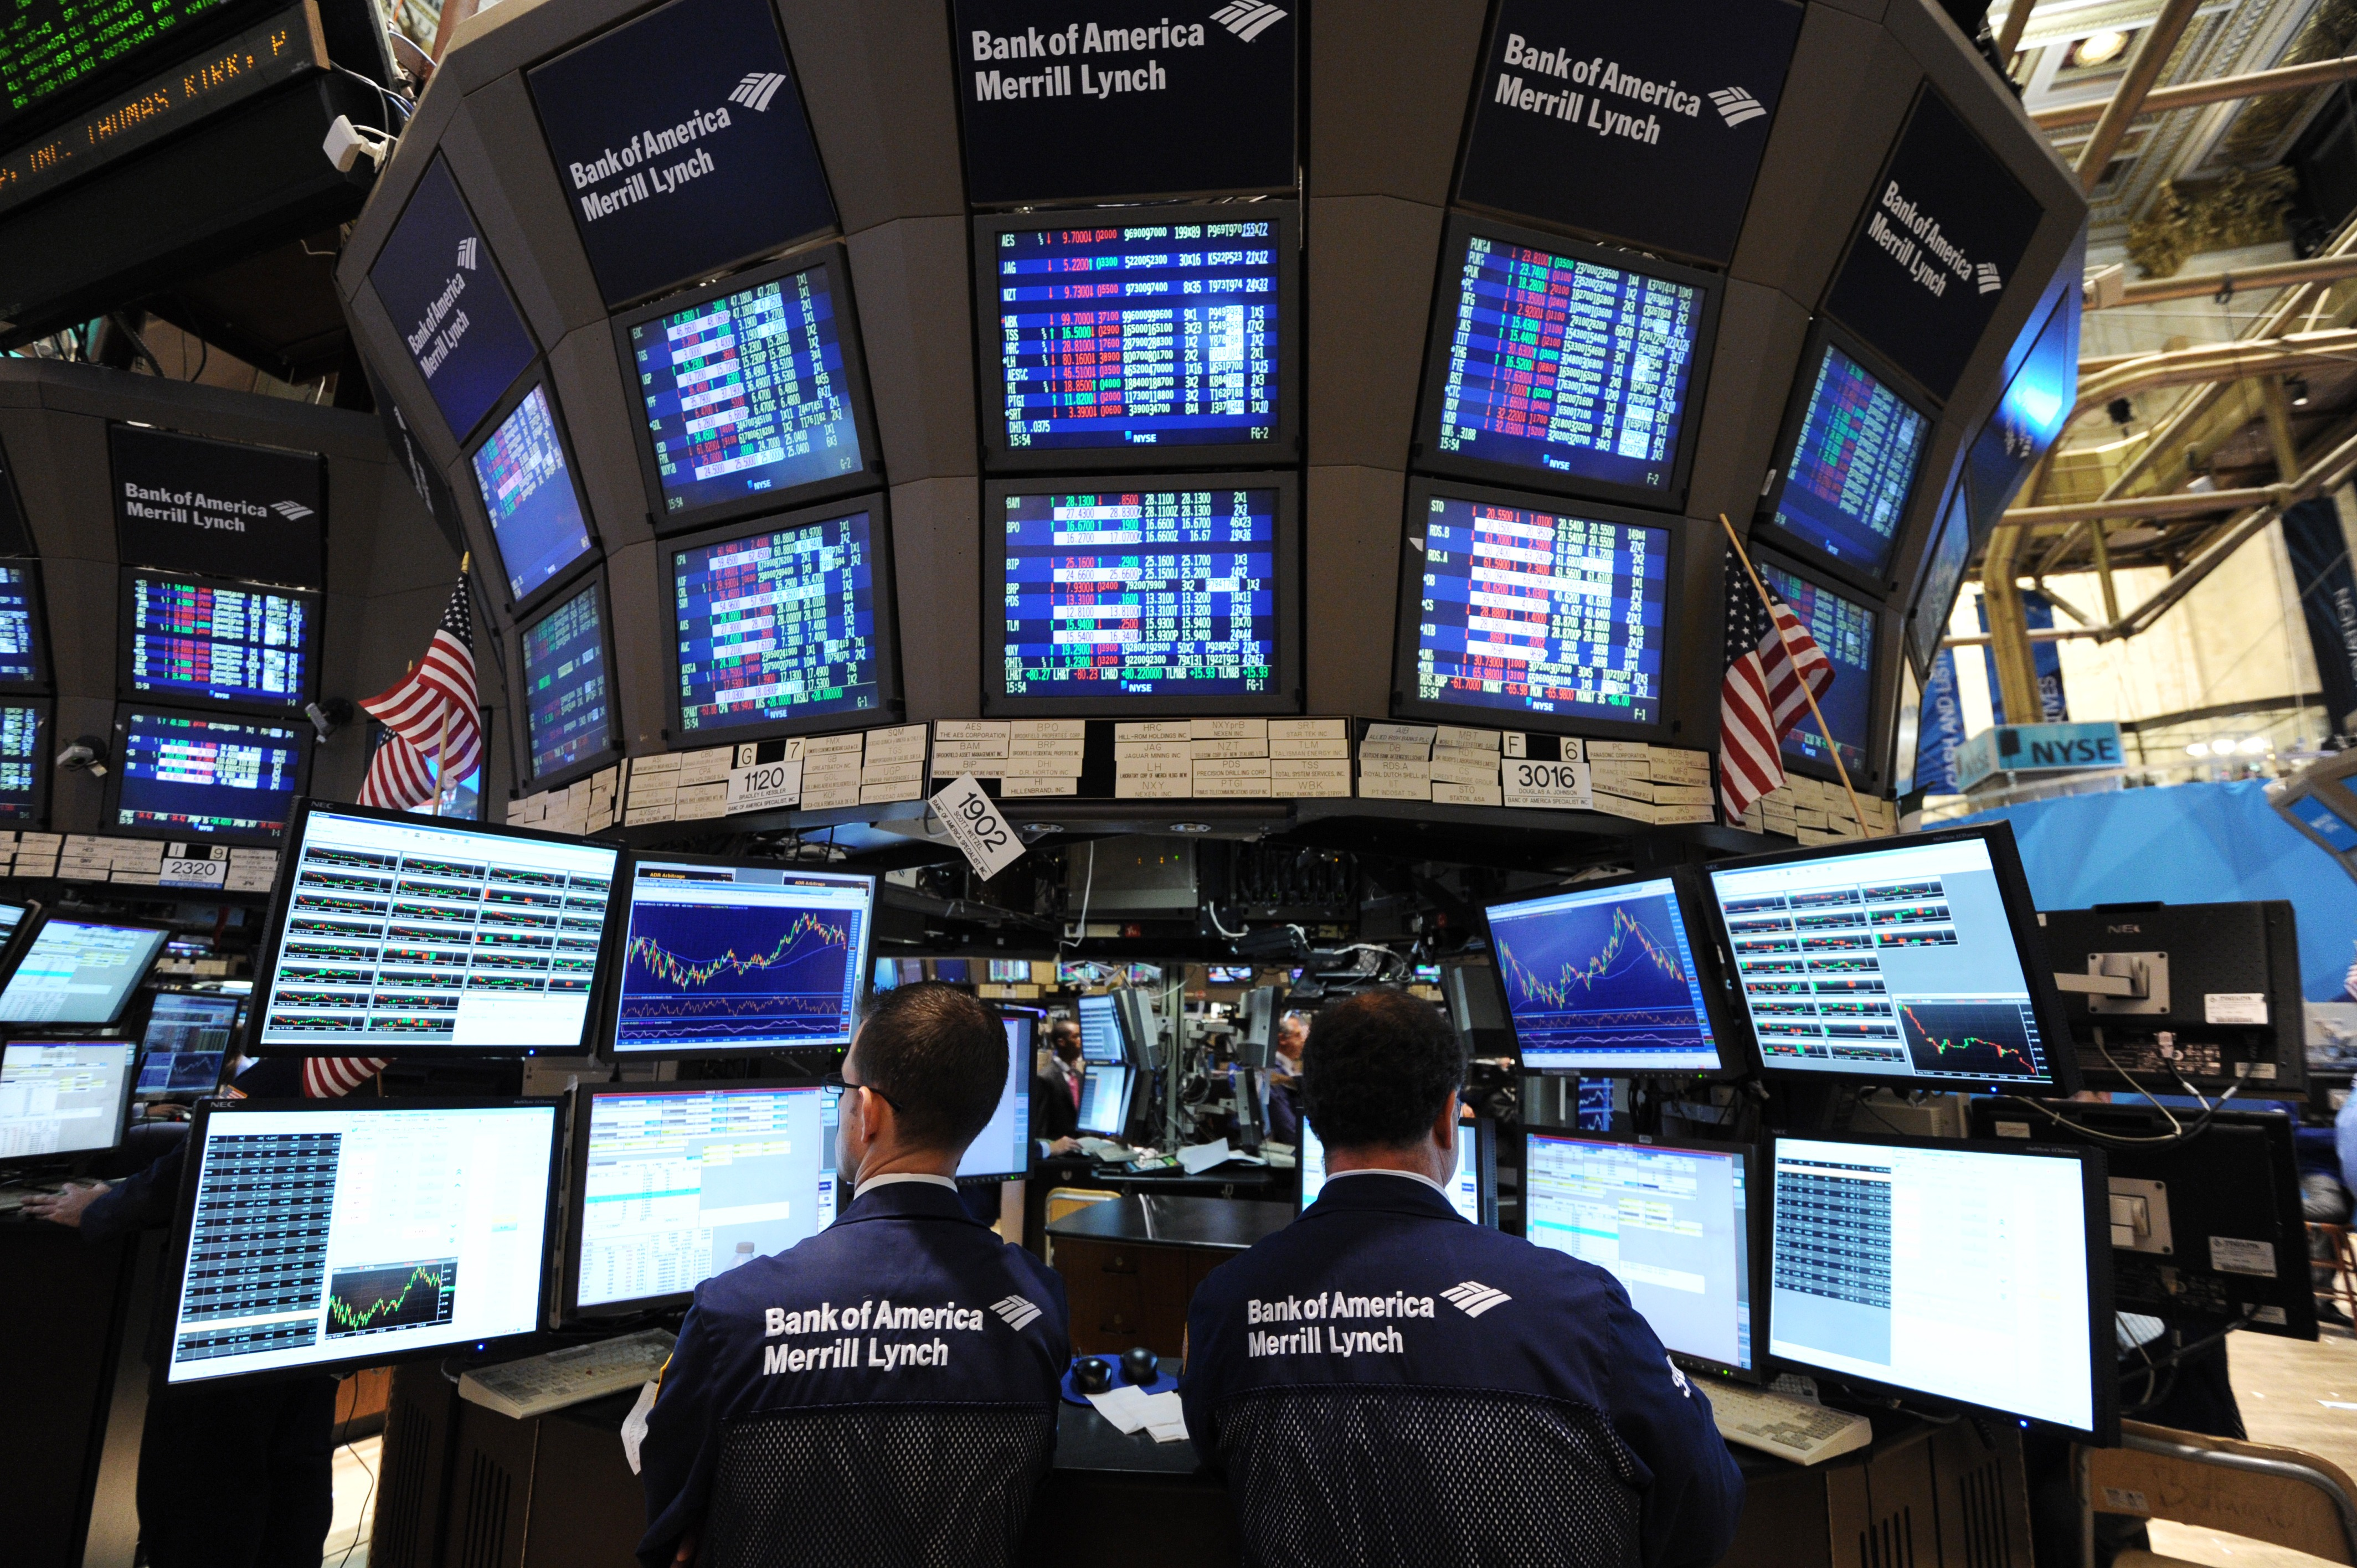 Stock specialists work at the Bank of America/Merrill Lynch post on the floor of the New York Stock Exchange.